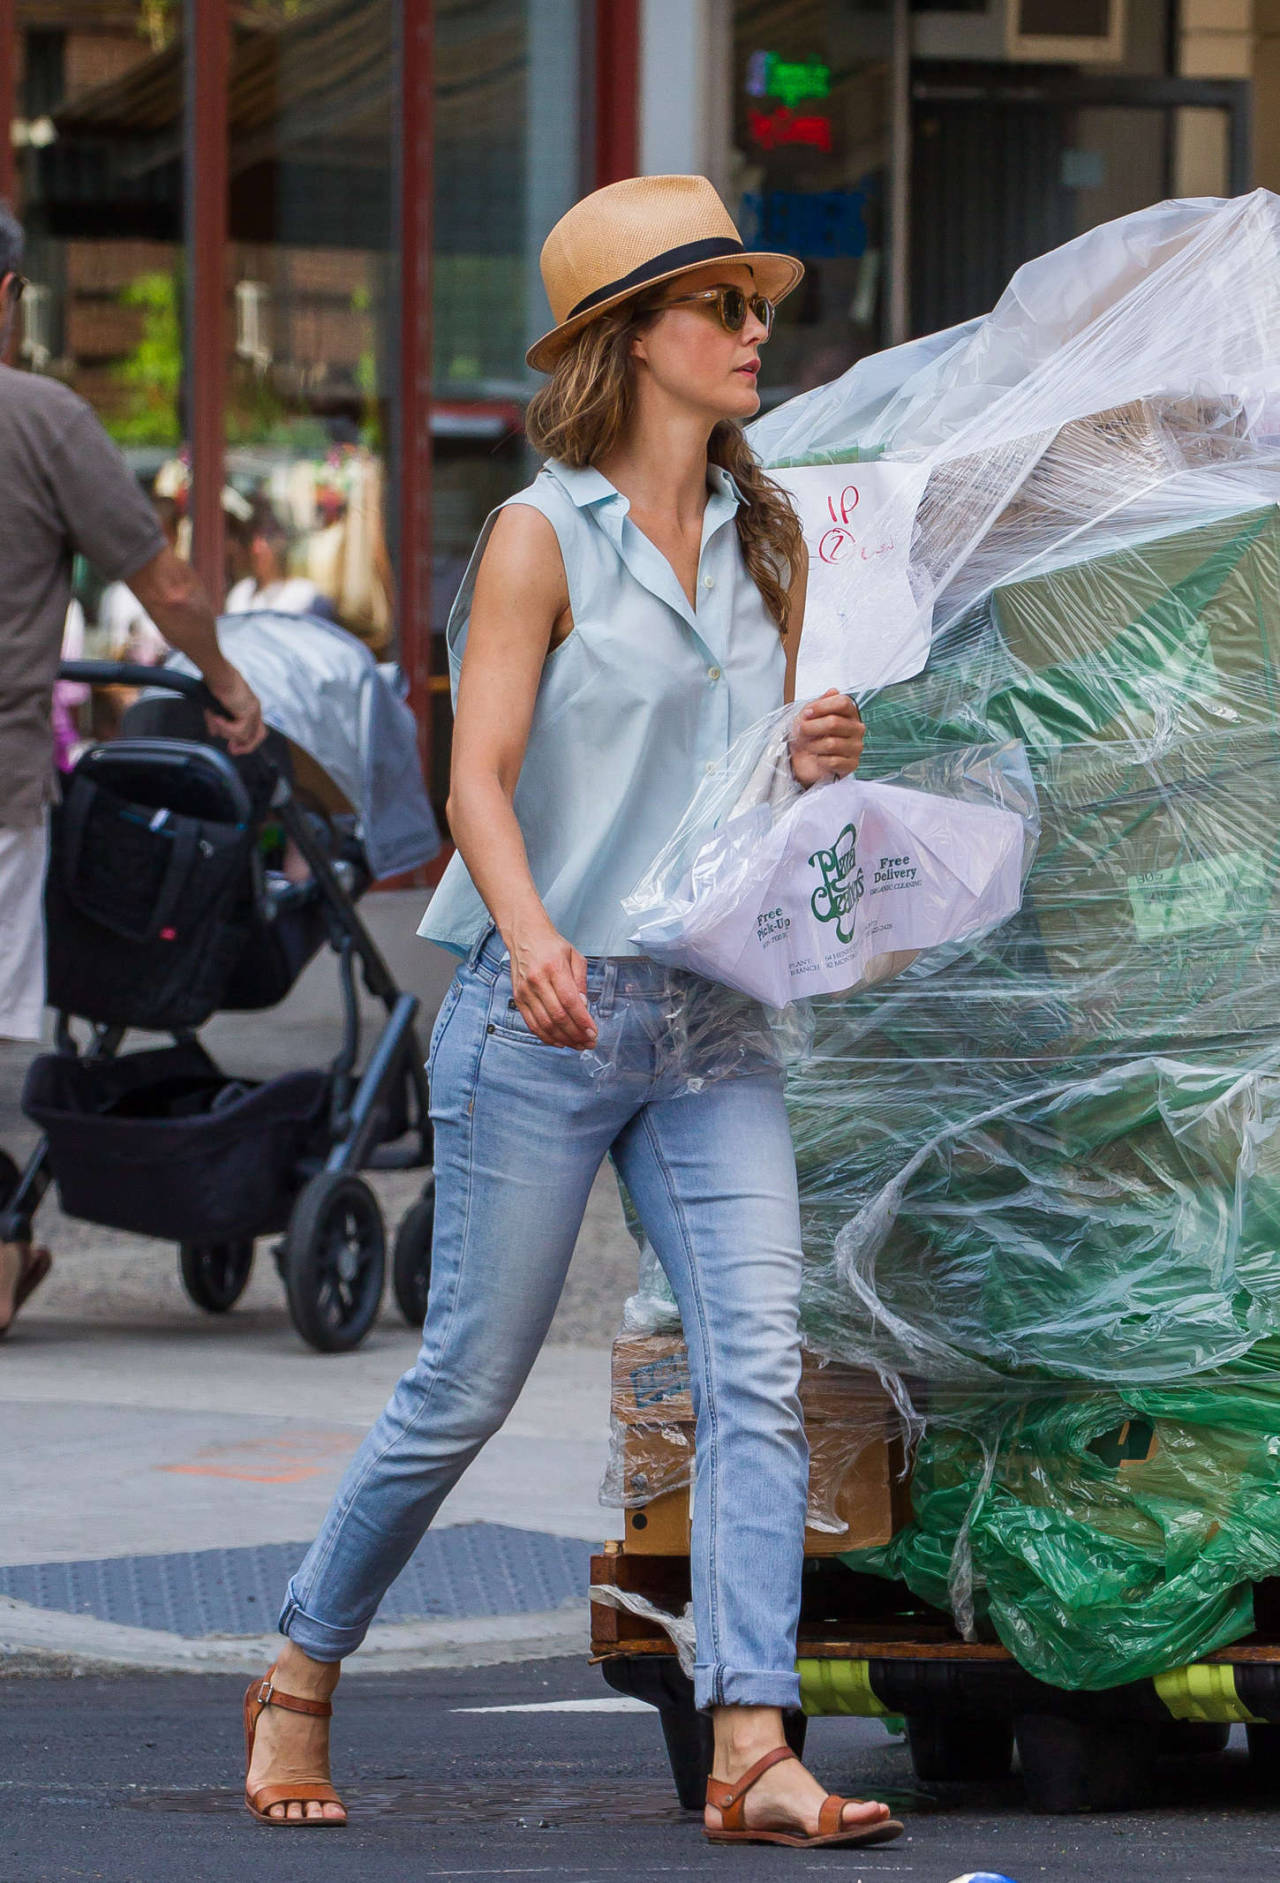 Keri Russell - voguesque--style #keri russell#brooklyn #nyc.new york city #new york#jeans#celebrity#celebs#famous#fashion#style#girl#cute#beautiful